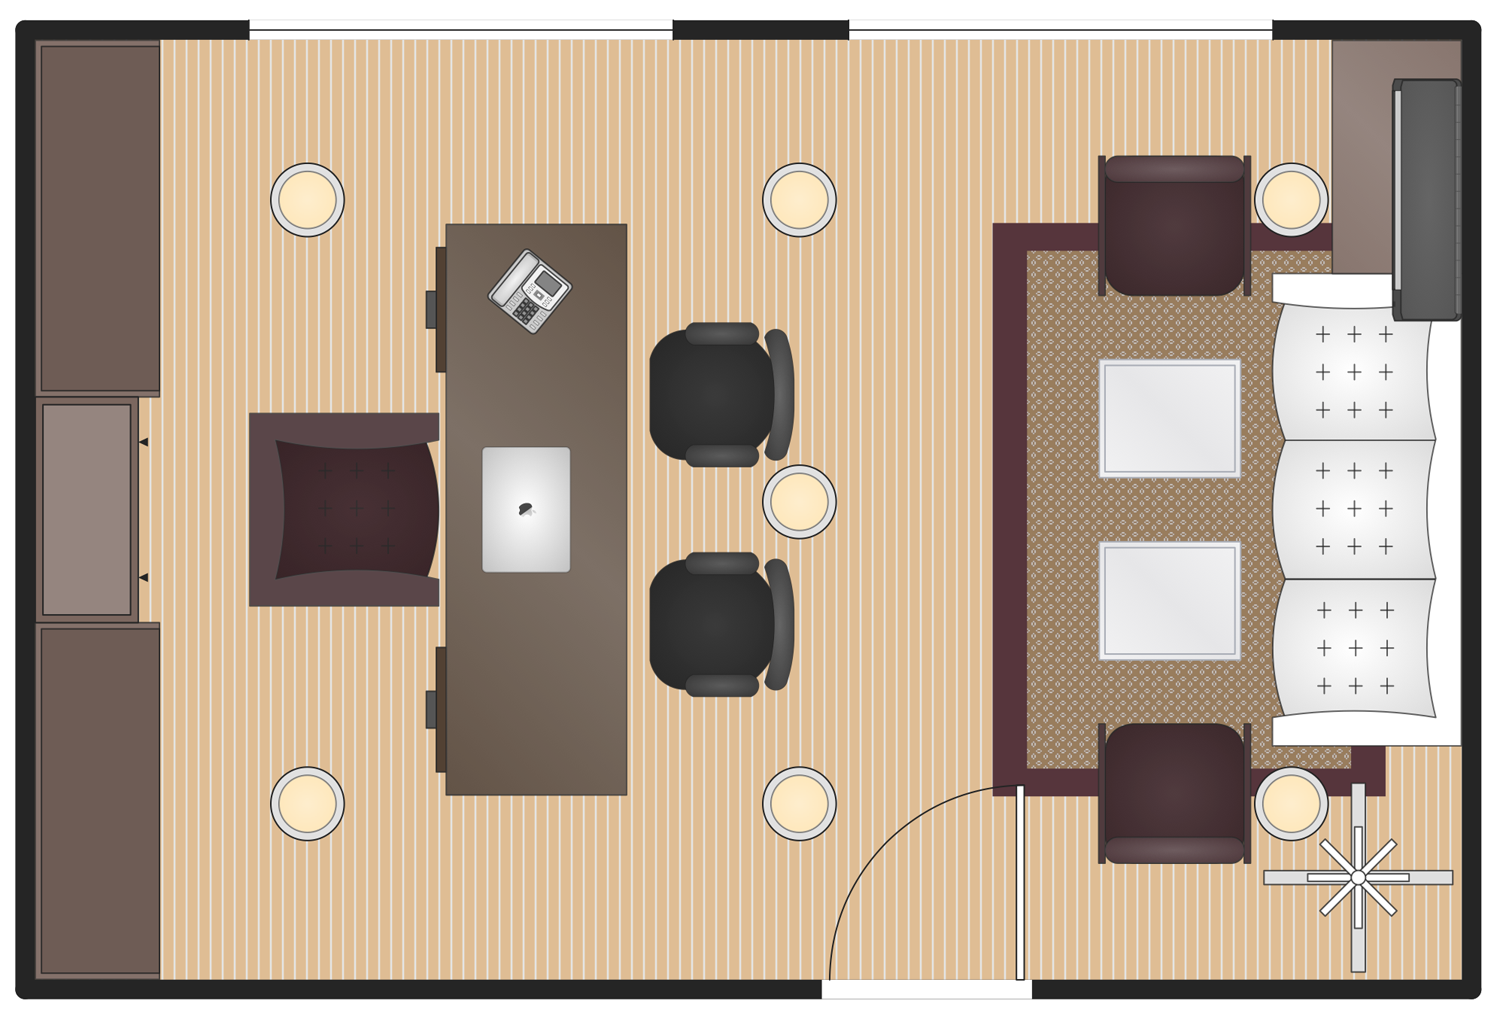 Building Plans Office Layout Plans Executive Office Plan on Lighting Diagram